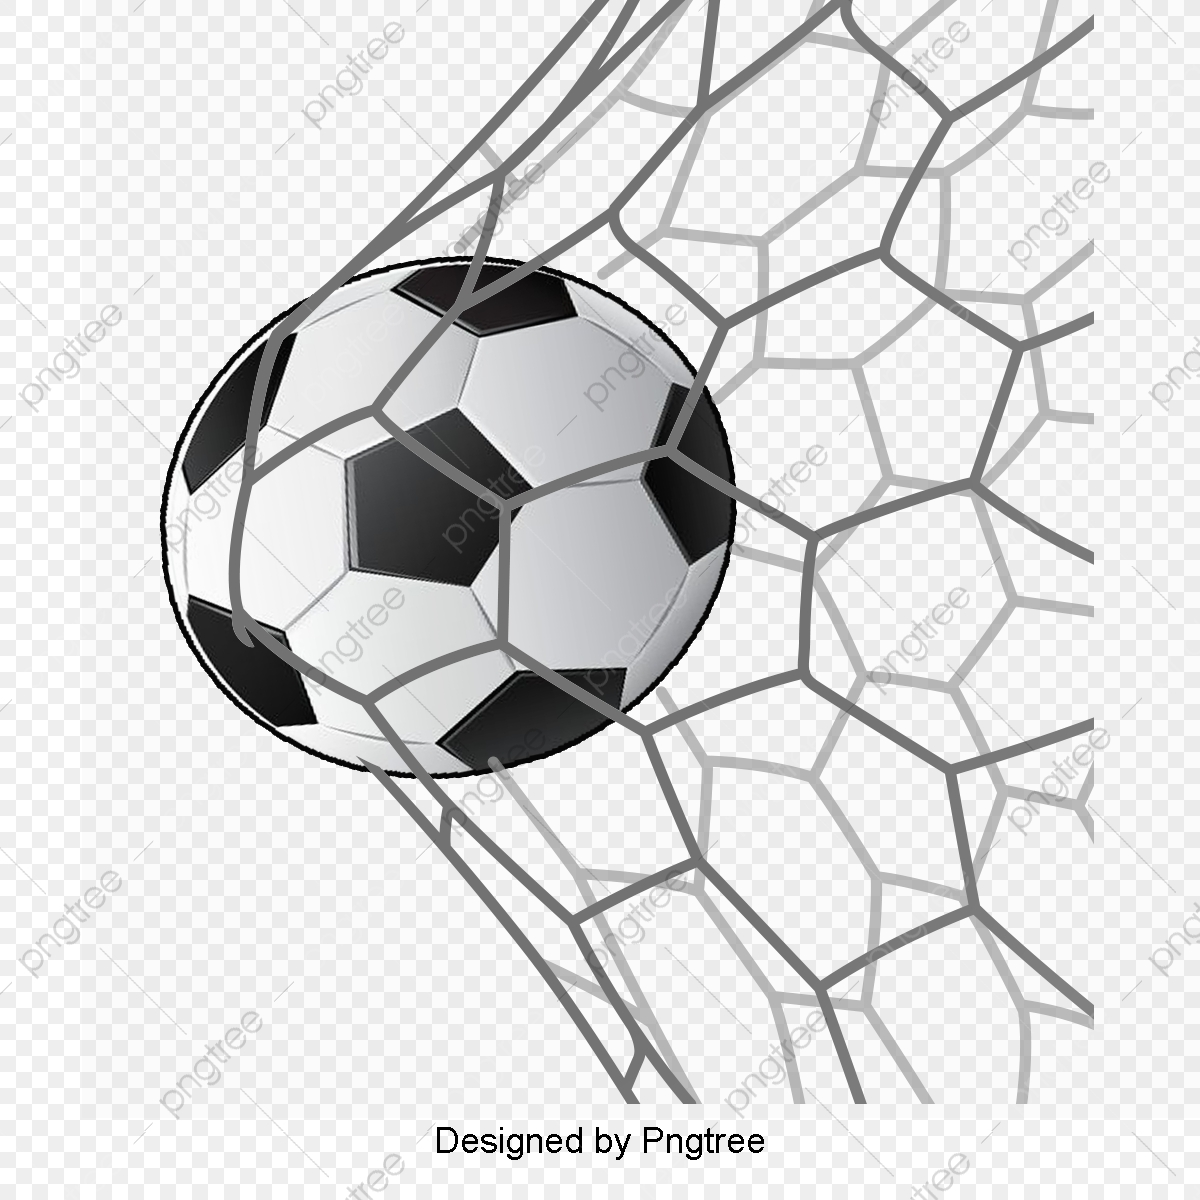 hight resolution of commercial use resource upgrade to premium plan and get license authorization upgradenow